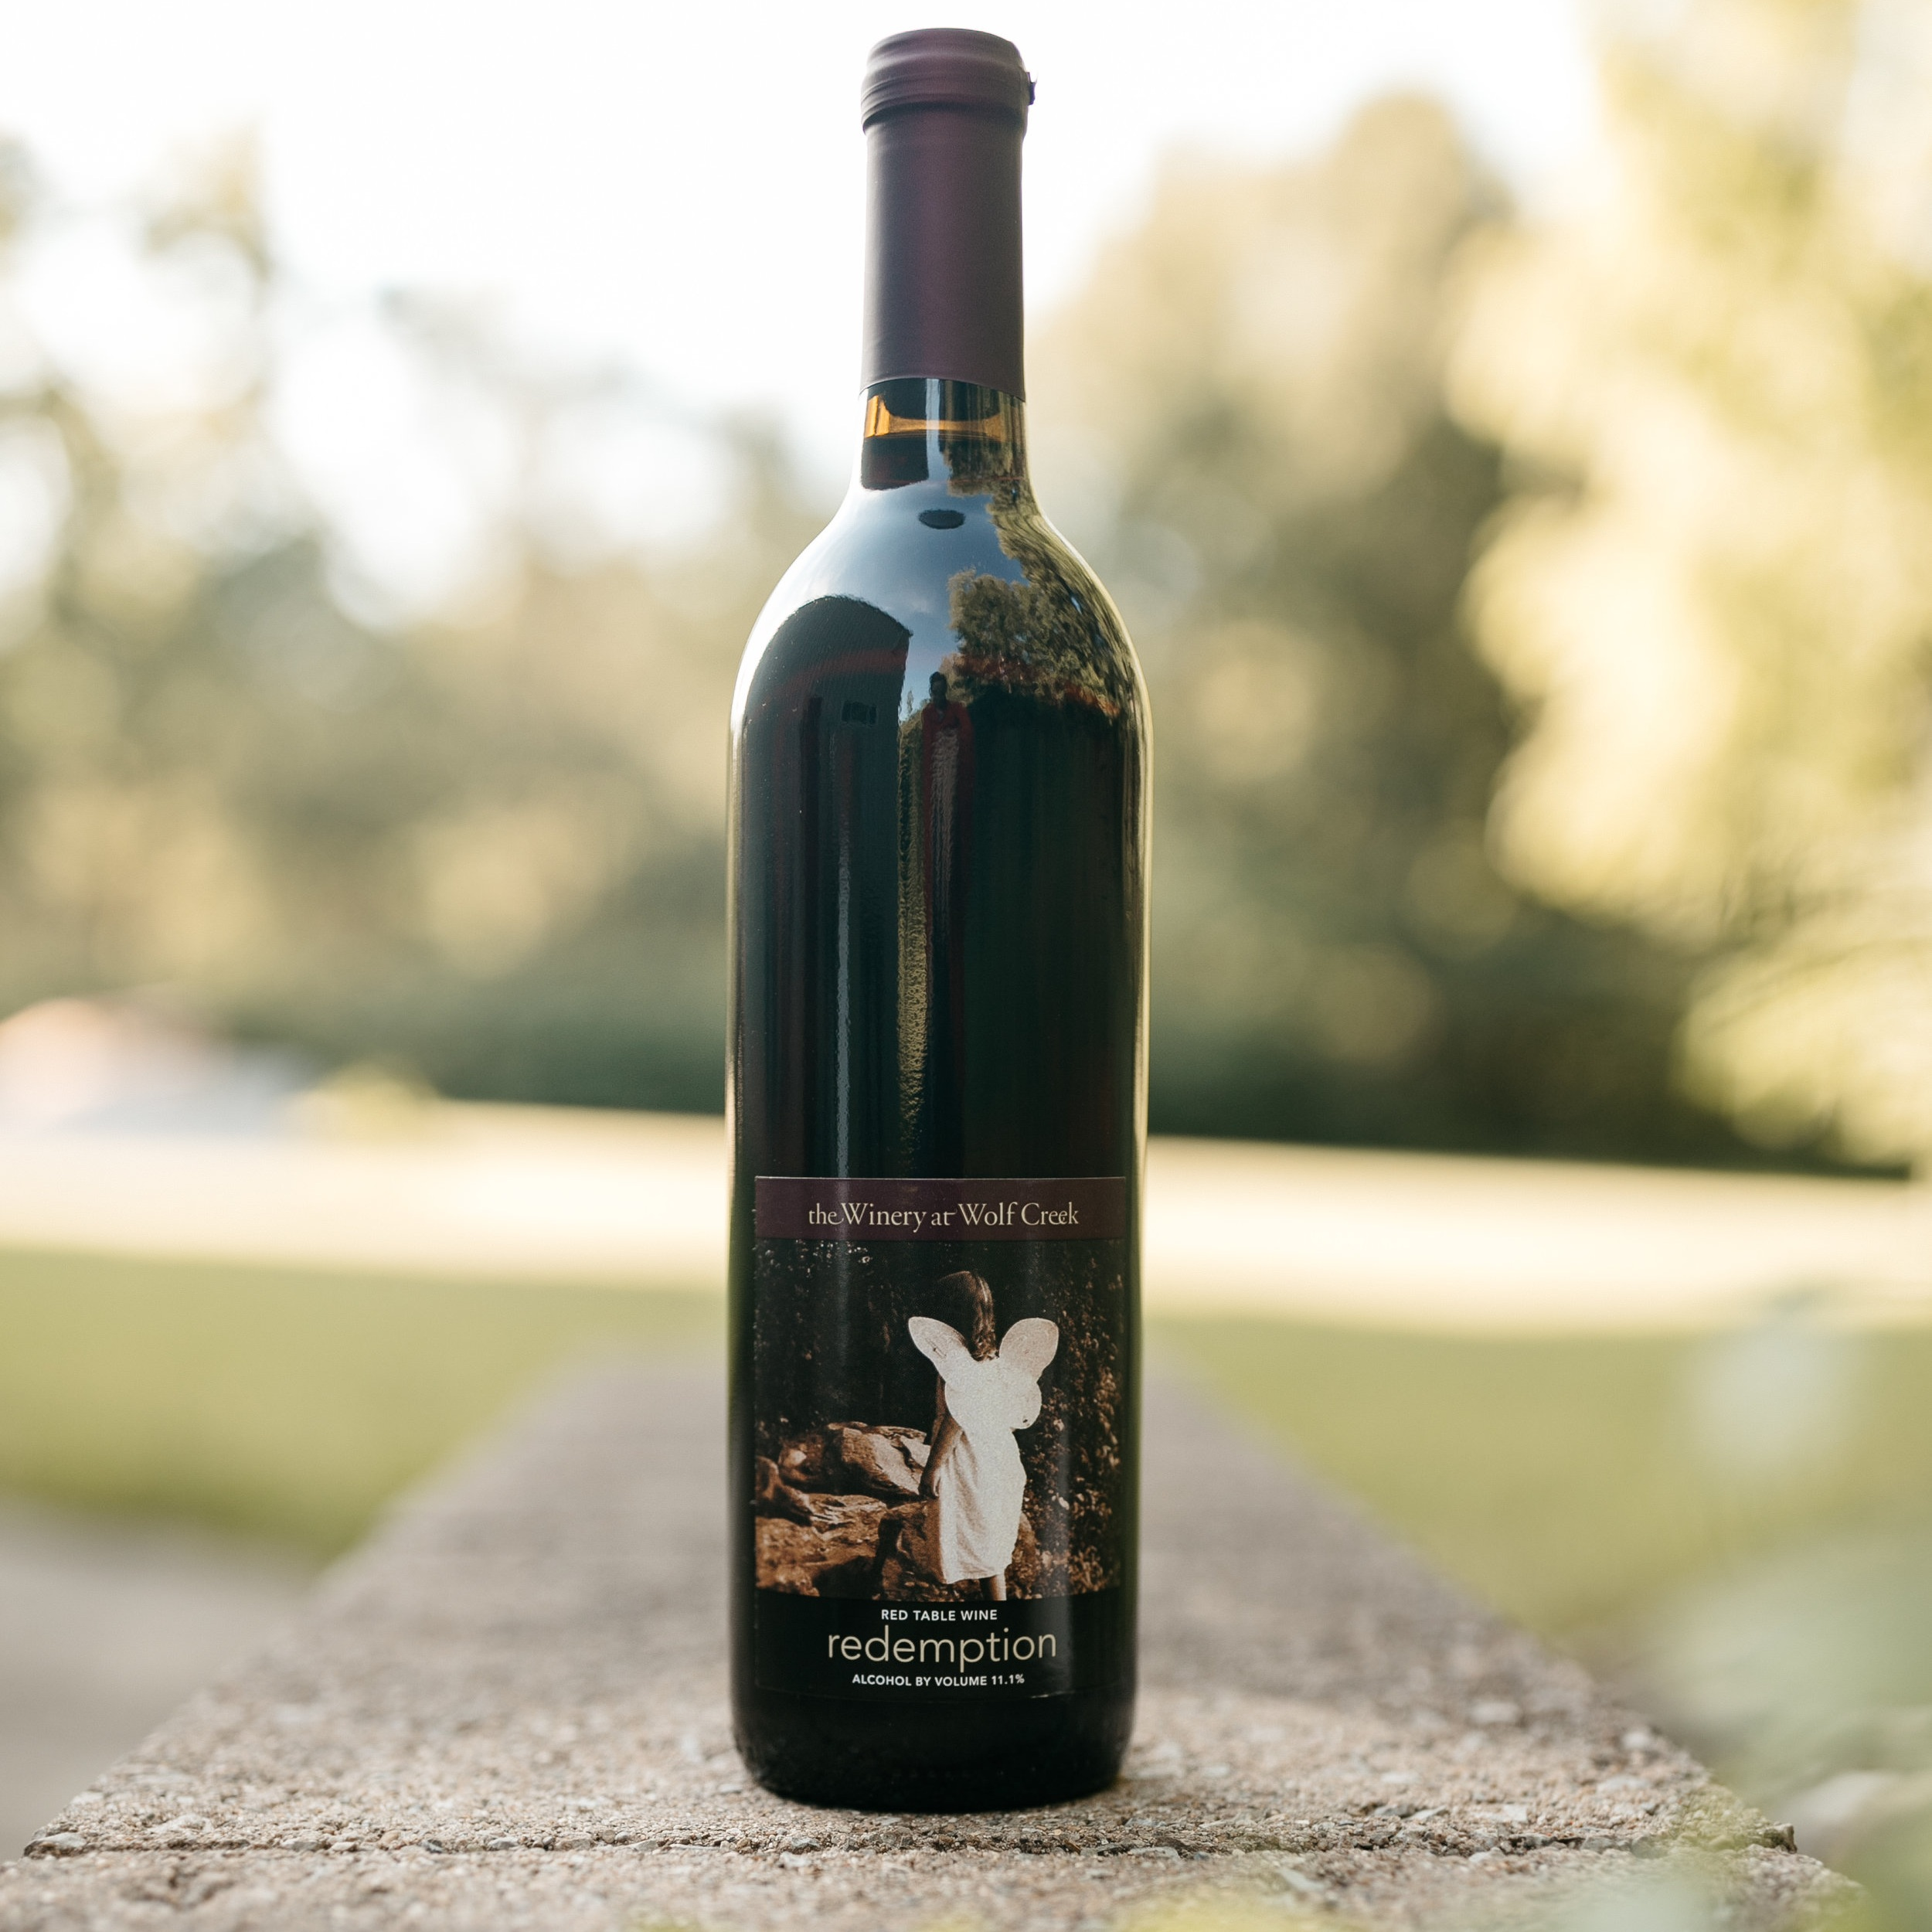 redemption - A full bodied, sweet red wine made from a blend of French hybrid grapes.